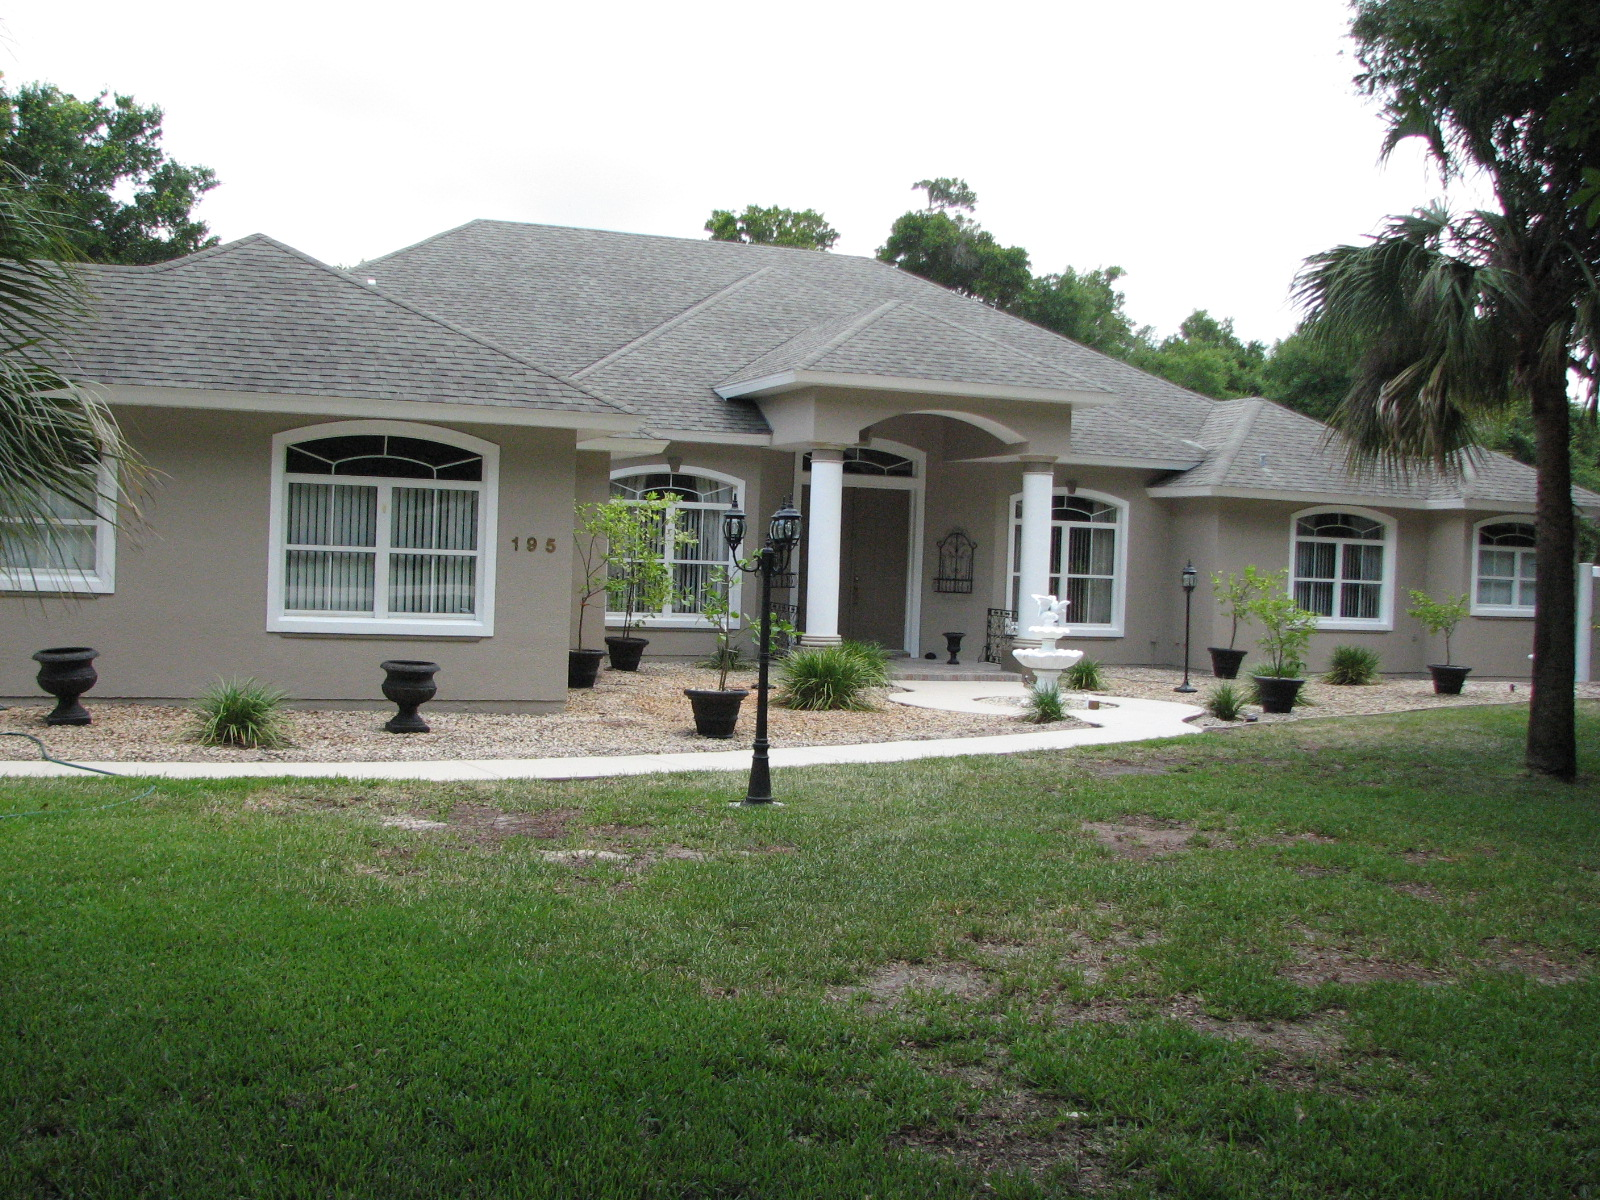 Cocoa fl exterior stucco painting after photo - Exterior home painting pictures paint ...